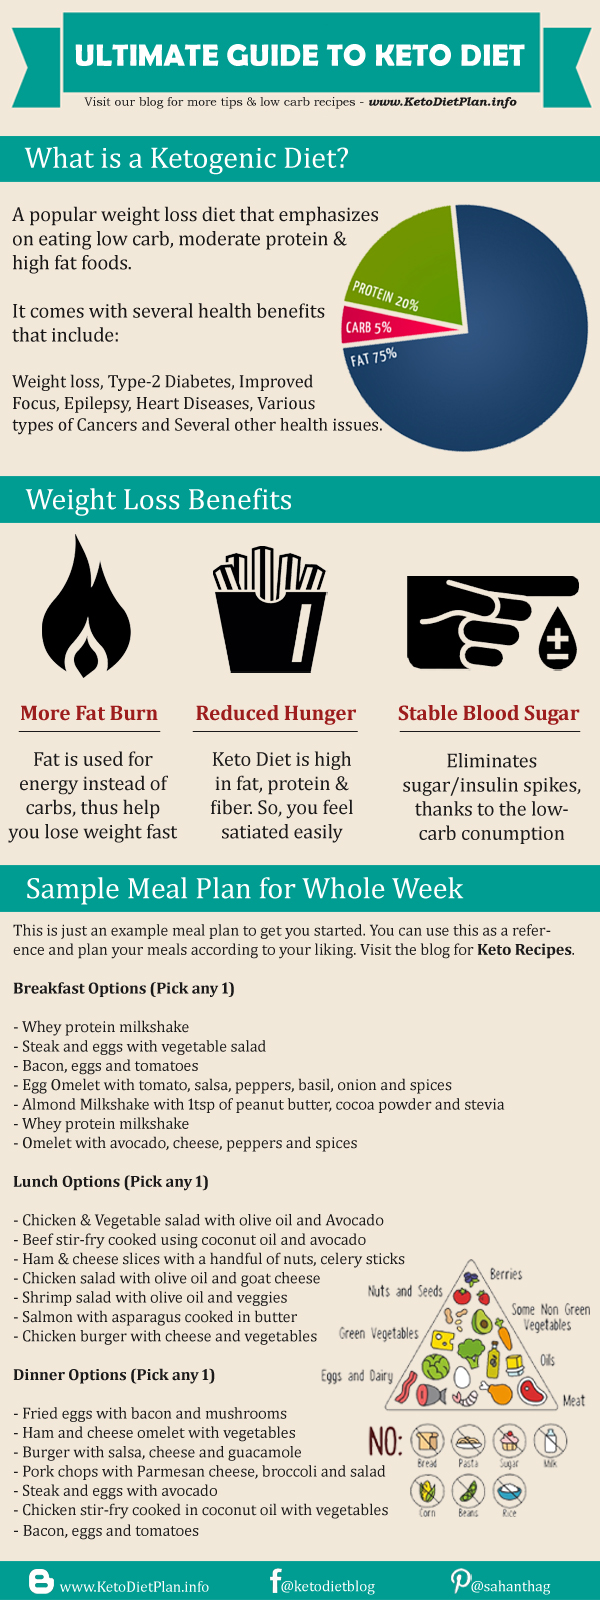 Keto diet plan for weight loss also indian ketogenic chart days rh ketodietplanfo